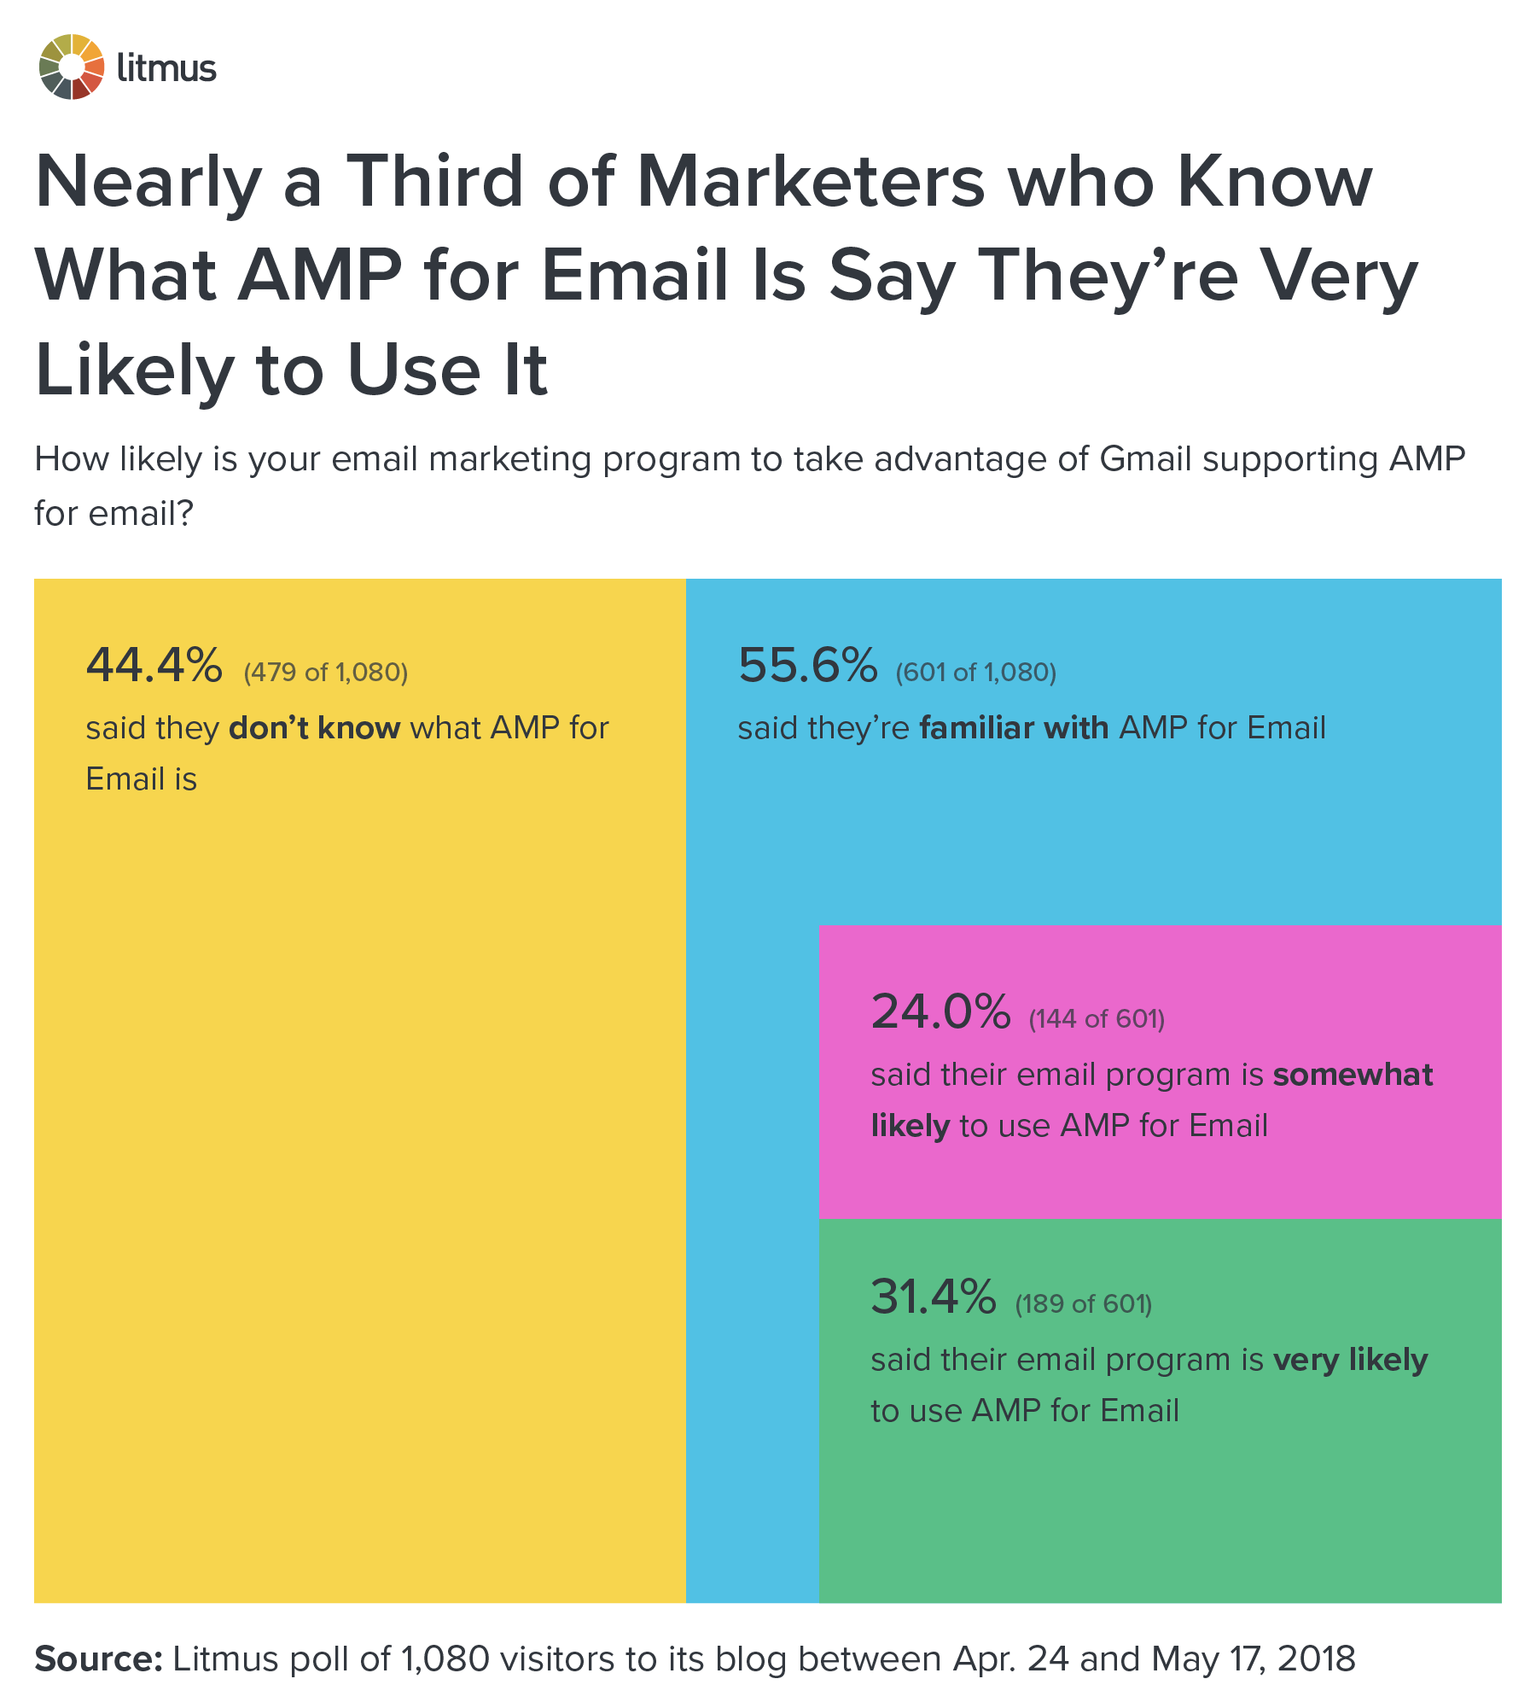 Nearly a Third of Marketers Who Know What AMP for Email Is Say They're Very Likely to Use It